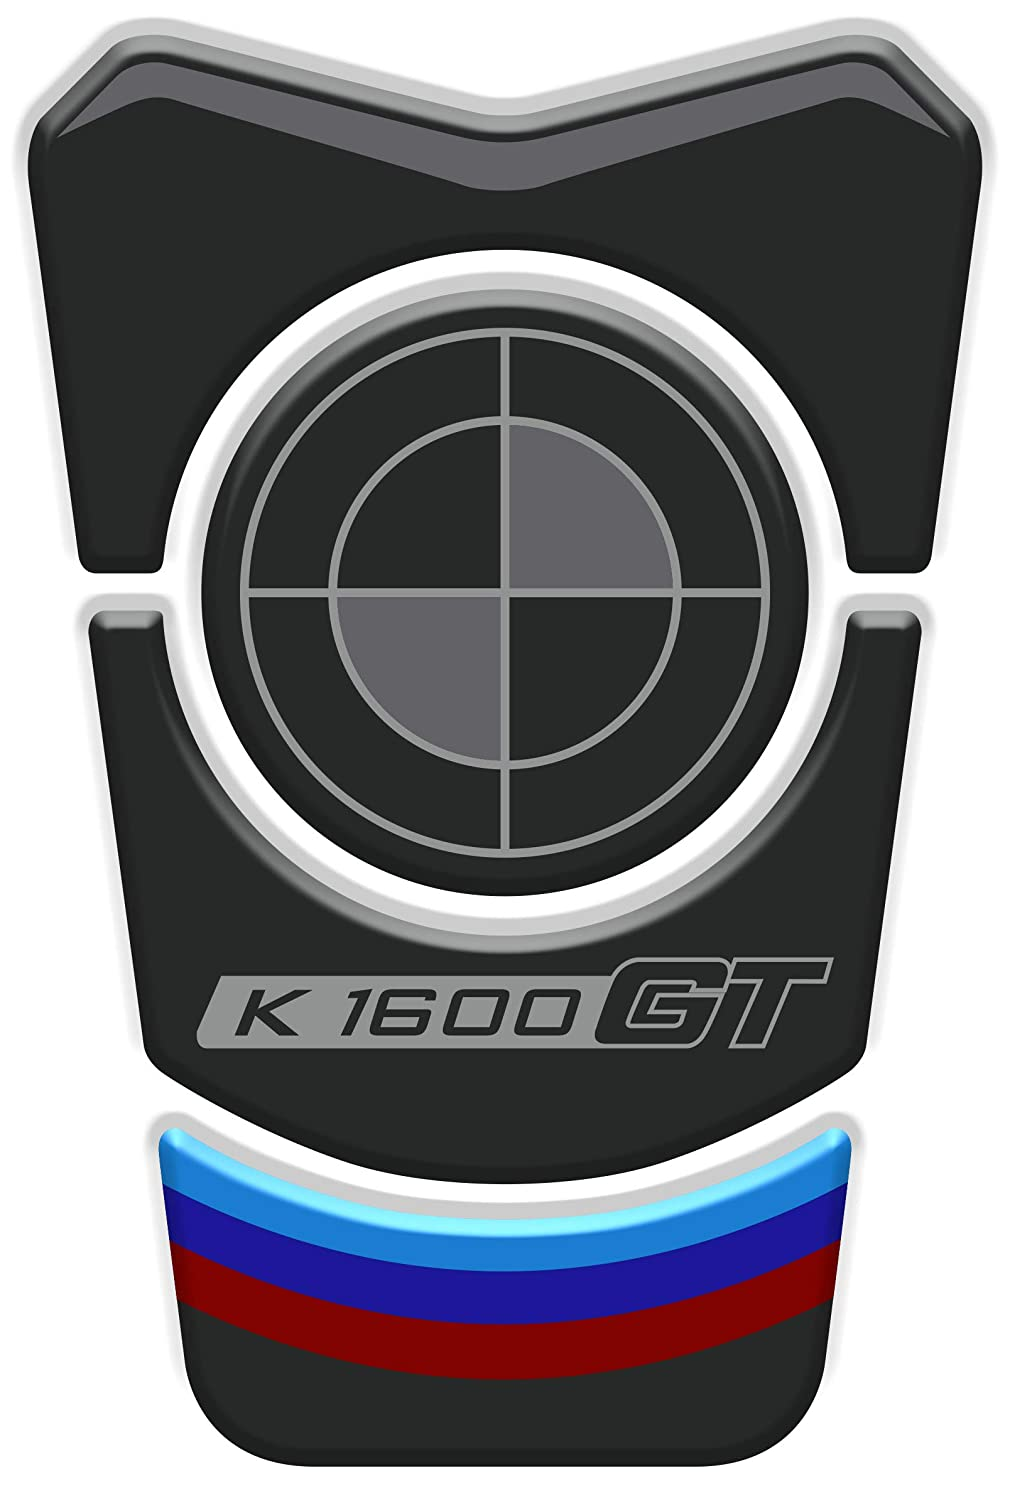 K1600 GT v1 Tankpad Sticker Protection de Reservoir Moto Autocollant en Gel compatible pour B.M.W